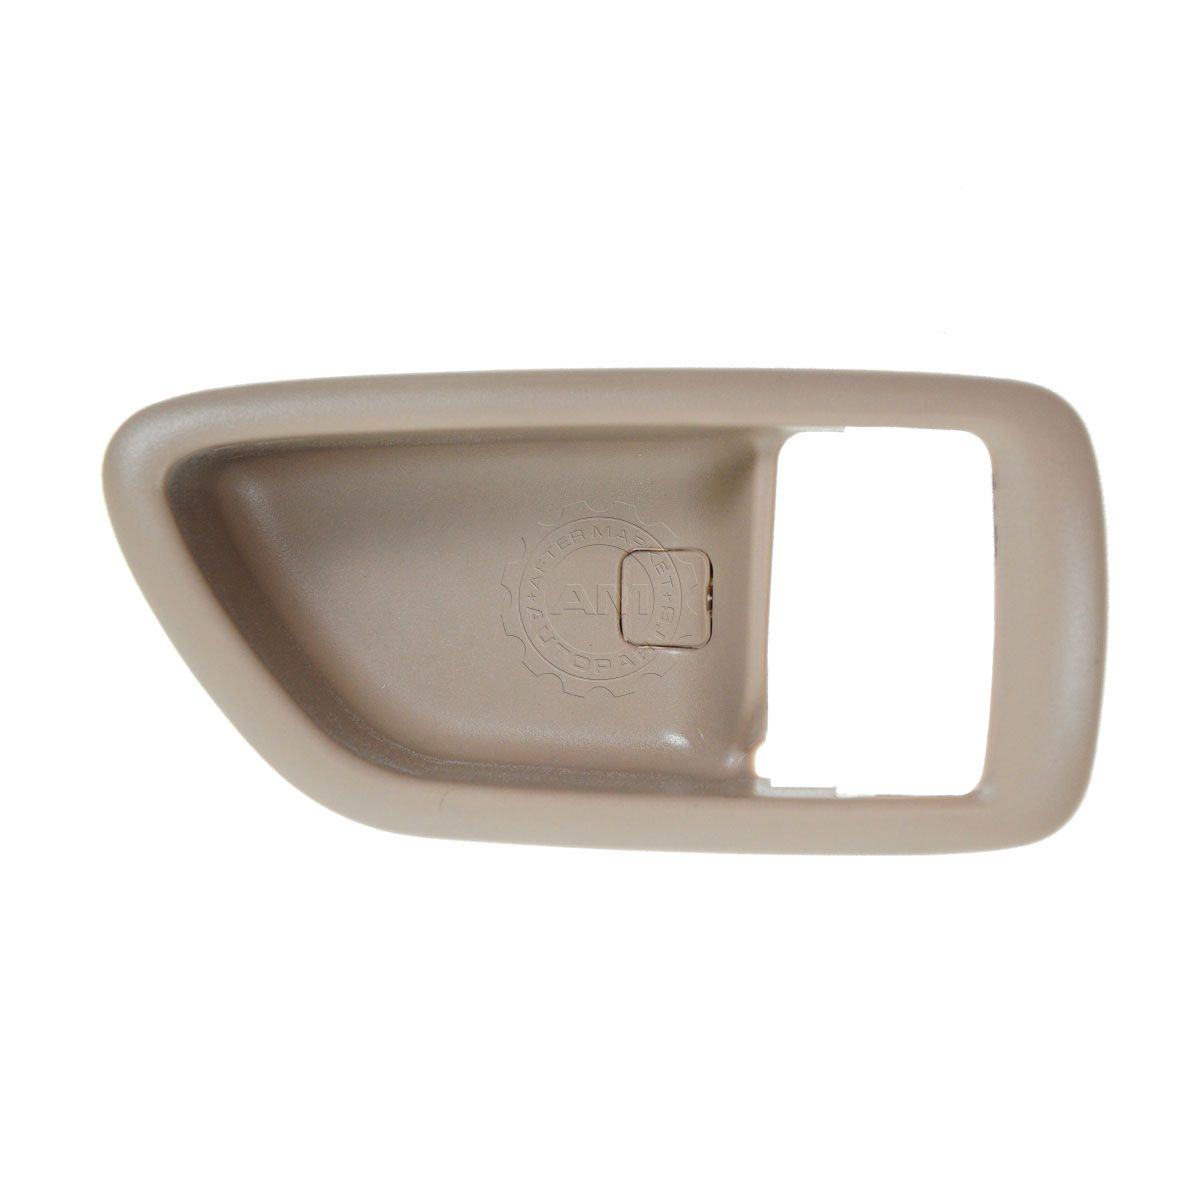 1998 toyota avalon interior door handle bezel